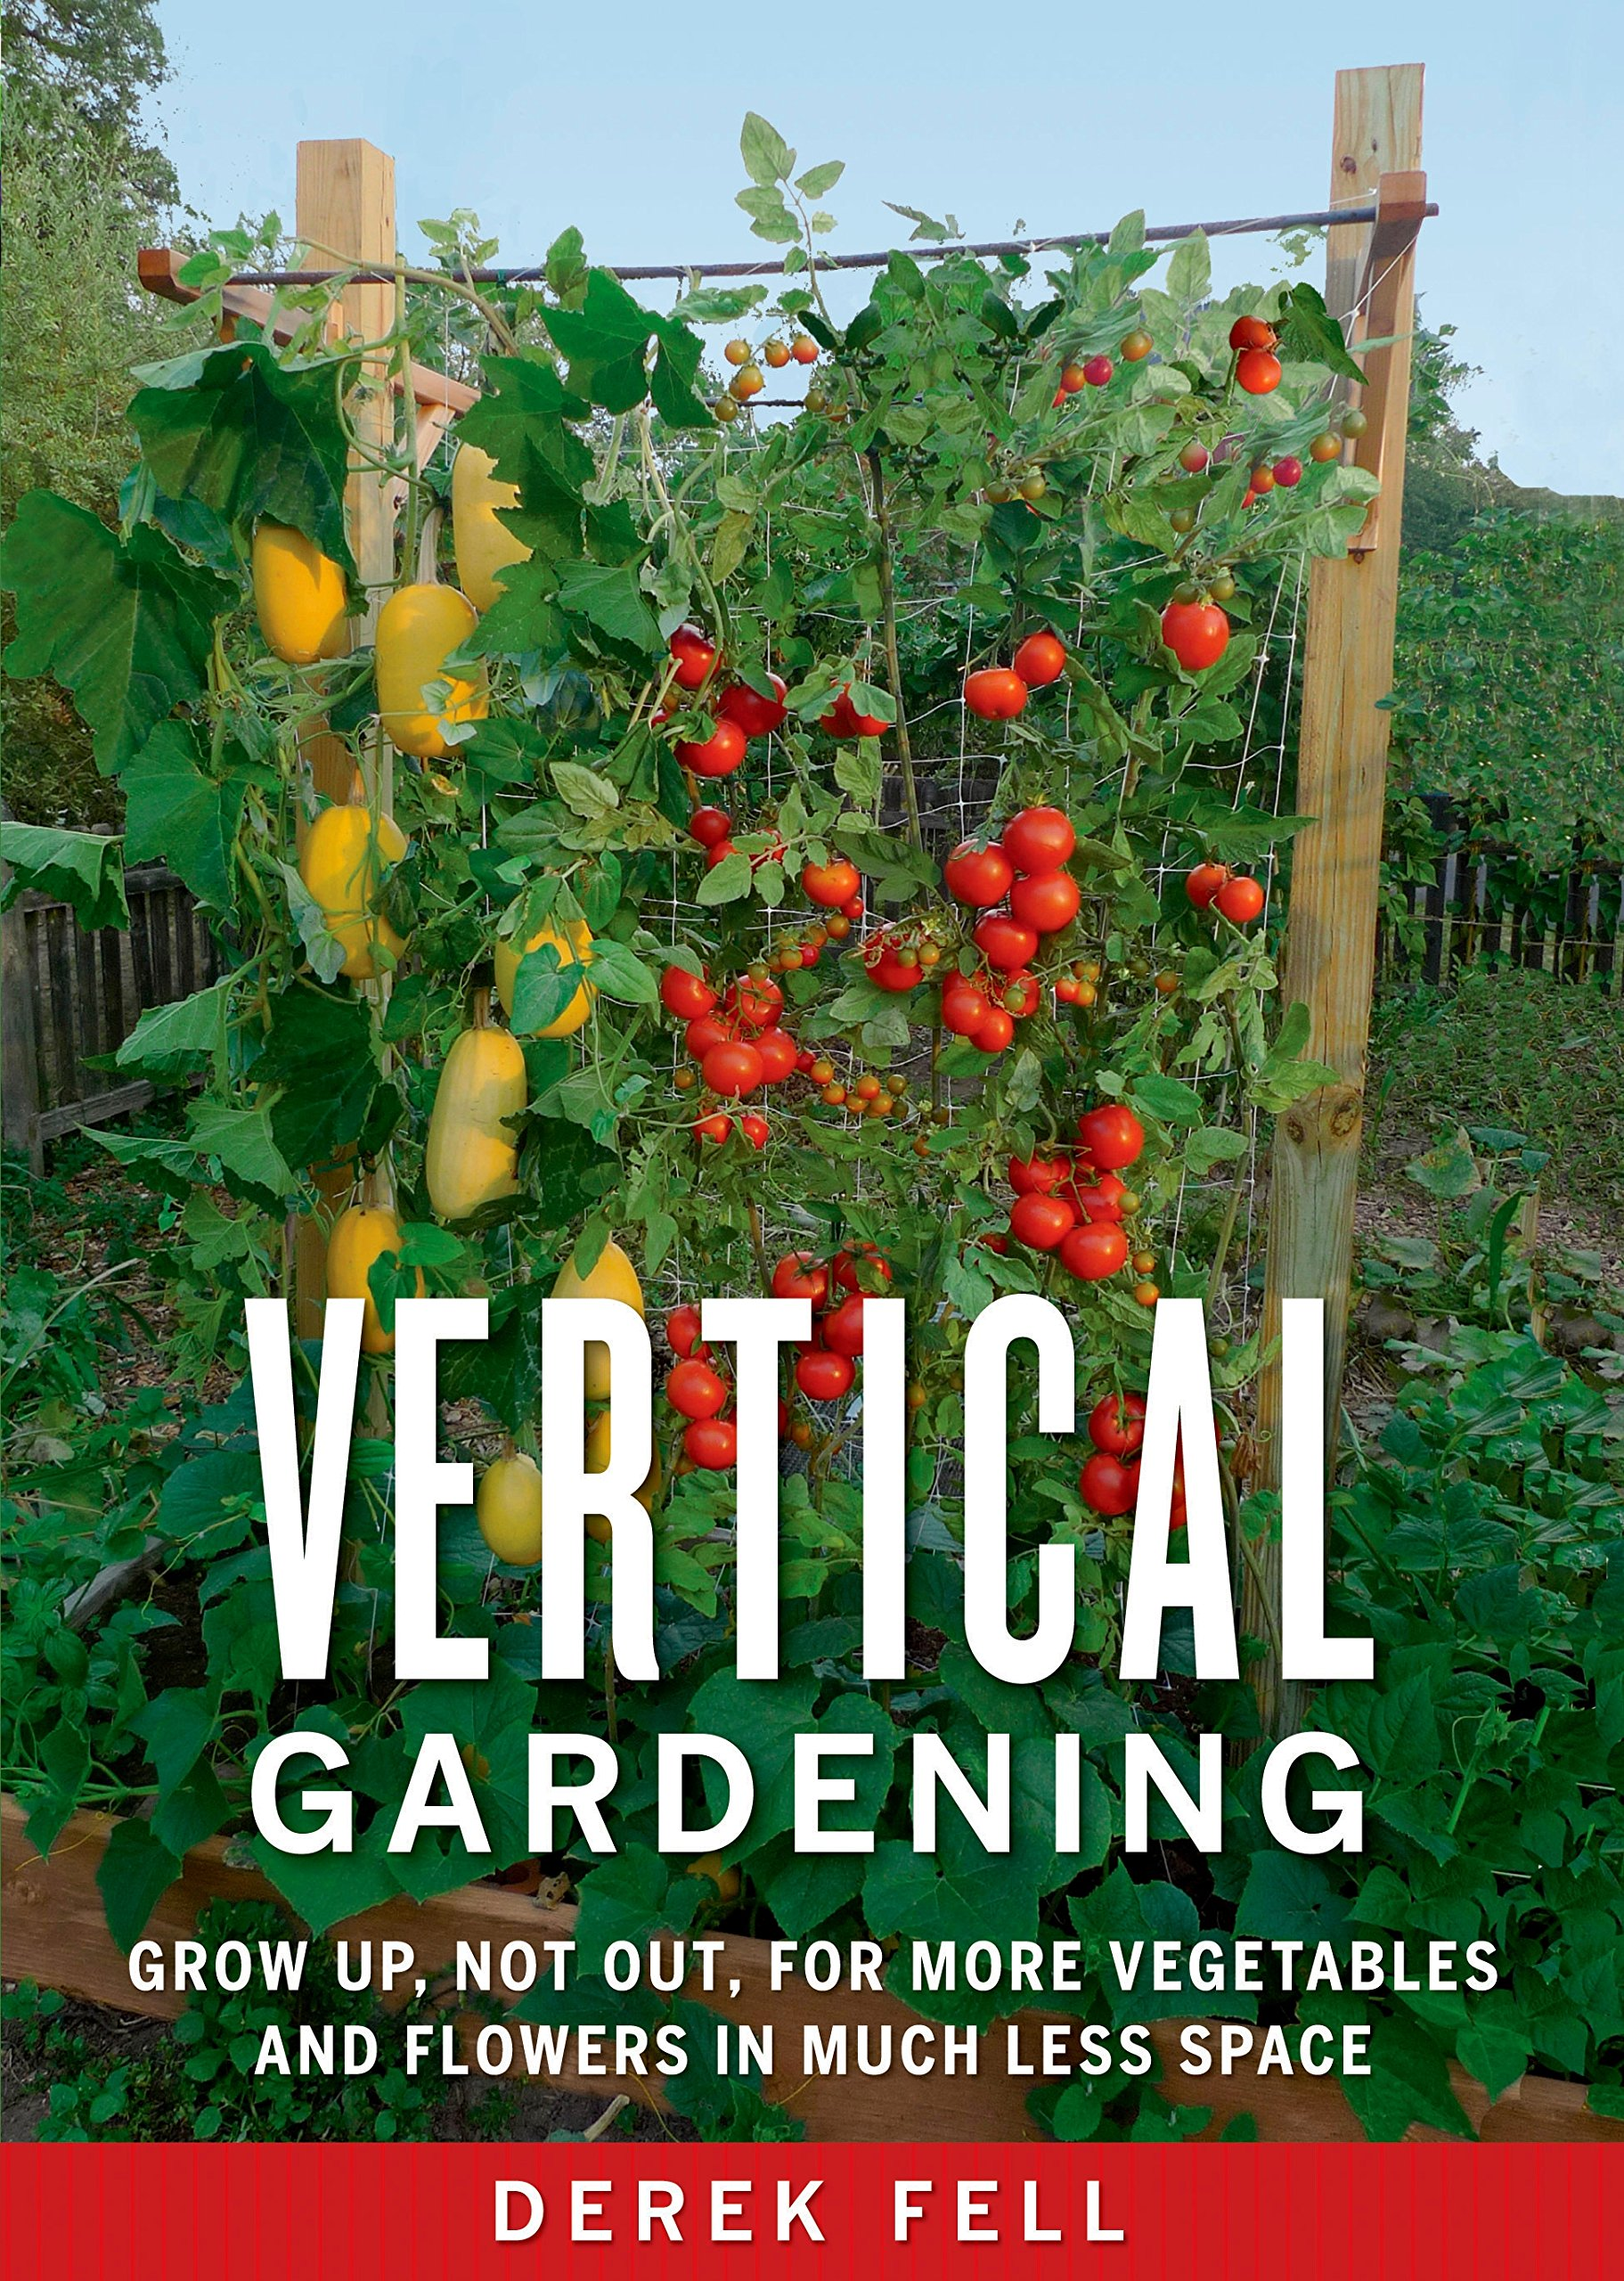 Vertical Gardening: Grow Up, Not Out, for More Vegetables and ...